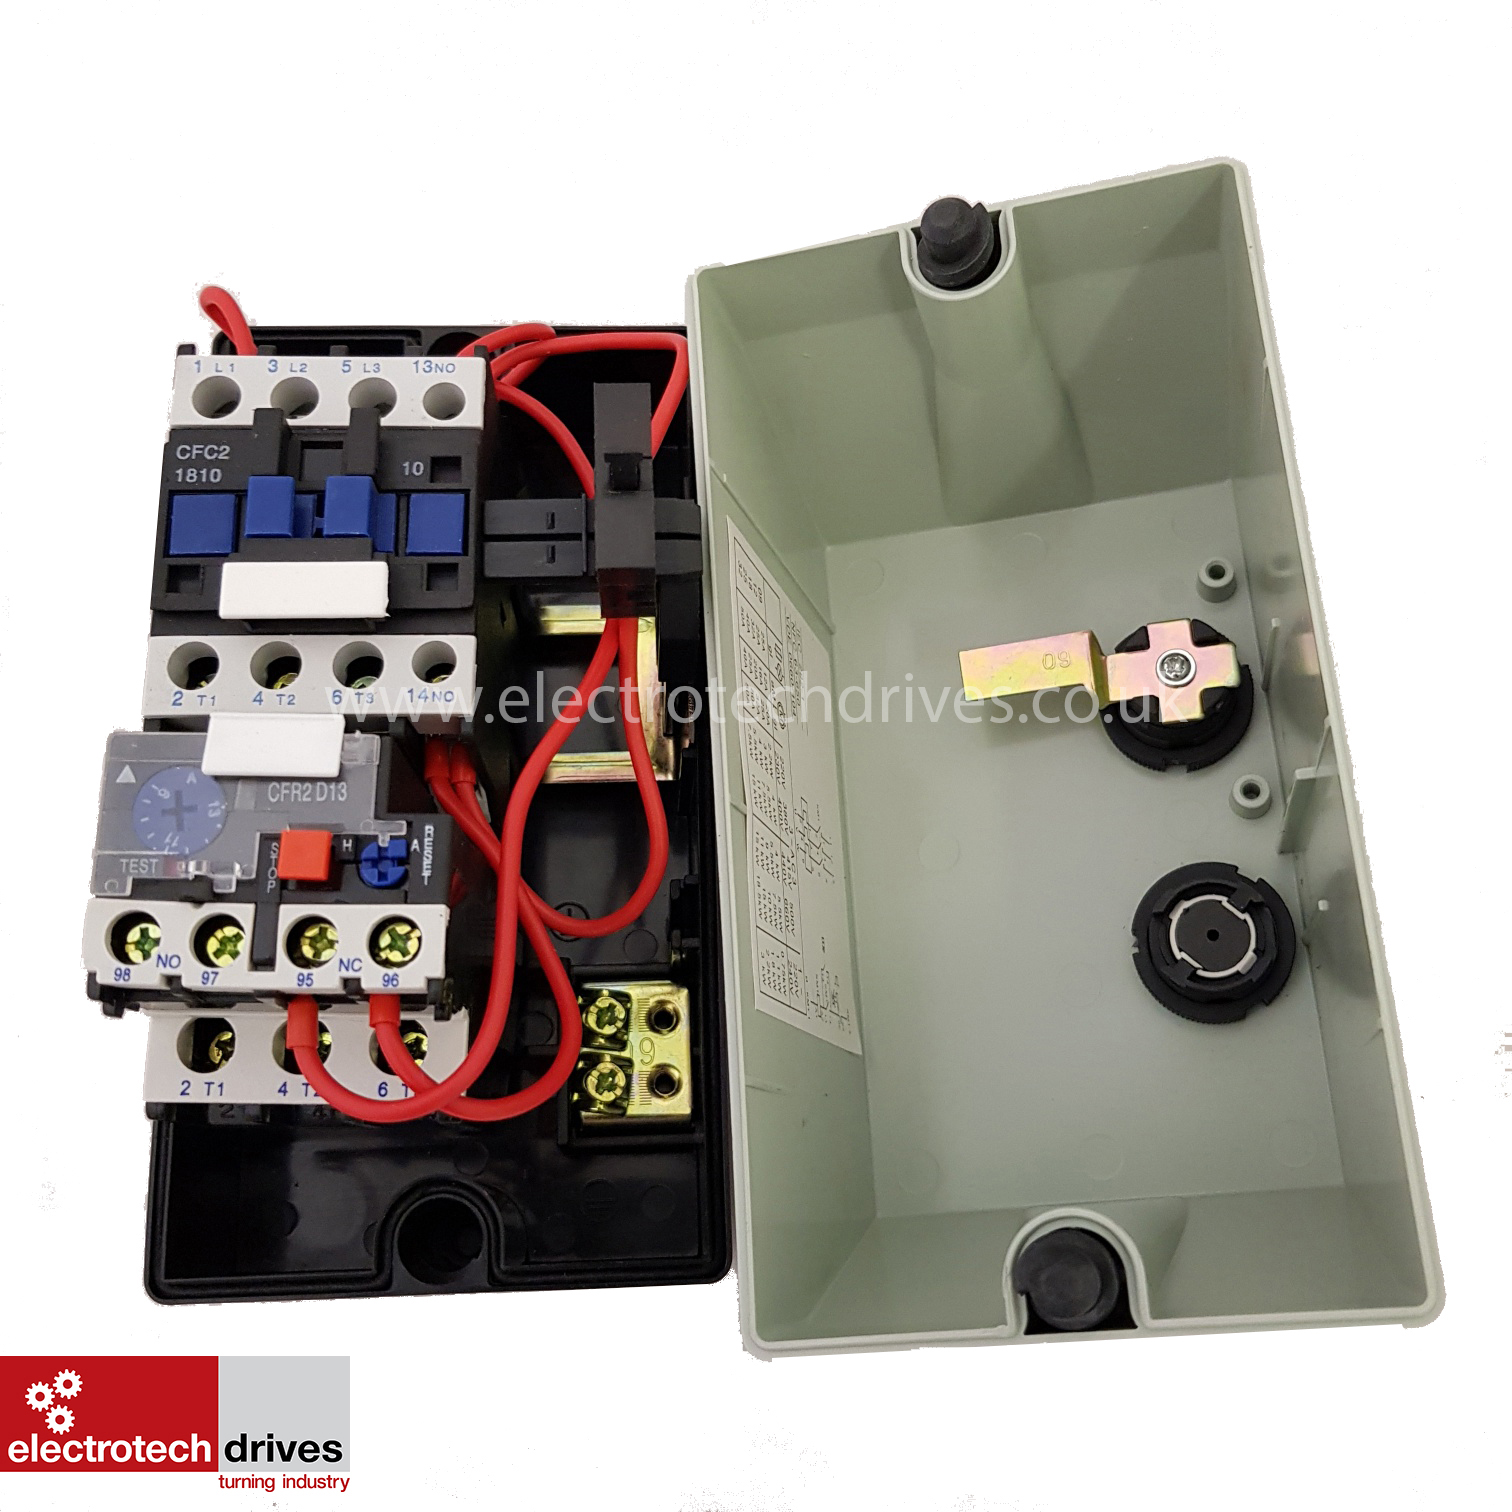 Electric Motor Dol Starter 240v Or 415v Pre Wired Contactor And Machine Wiring Diagram In Addition With Overload 18amp